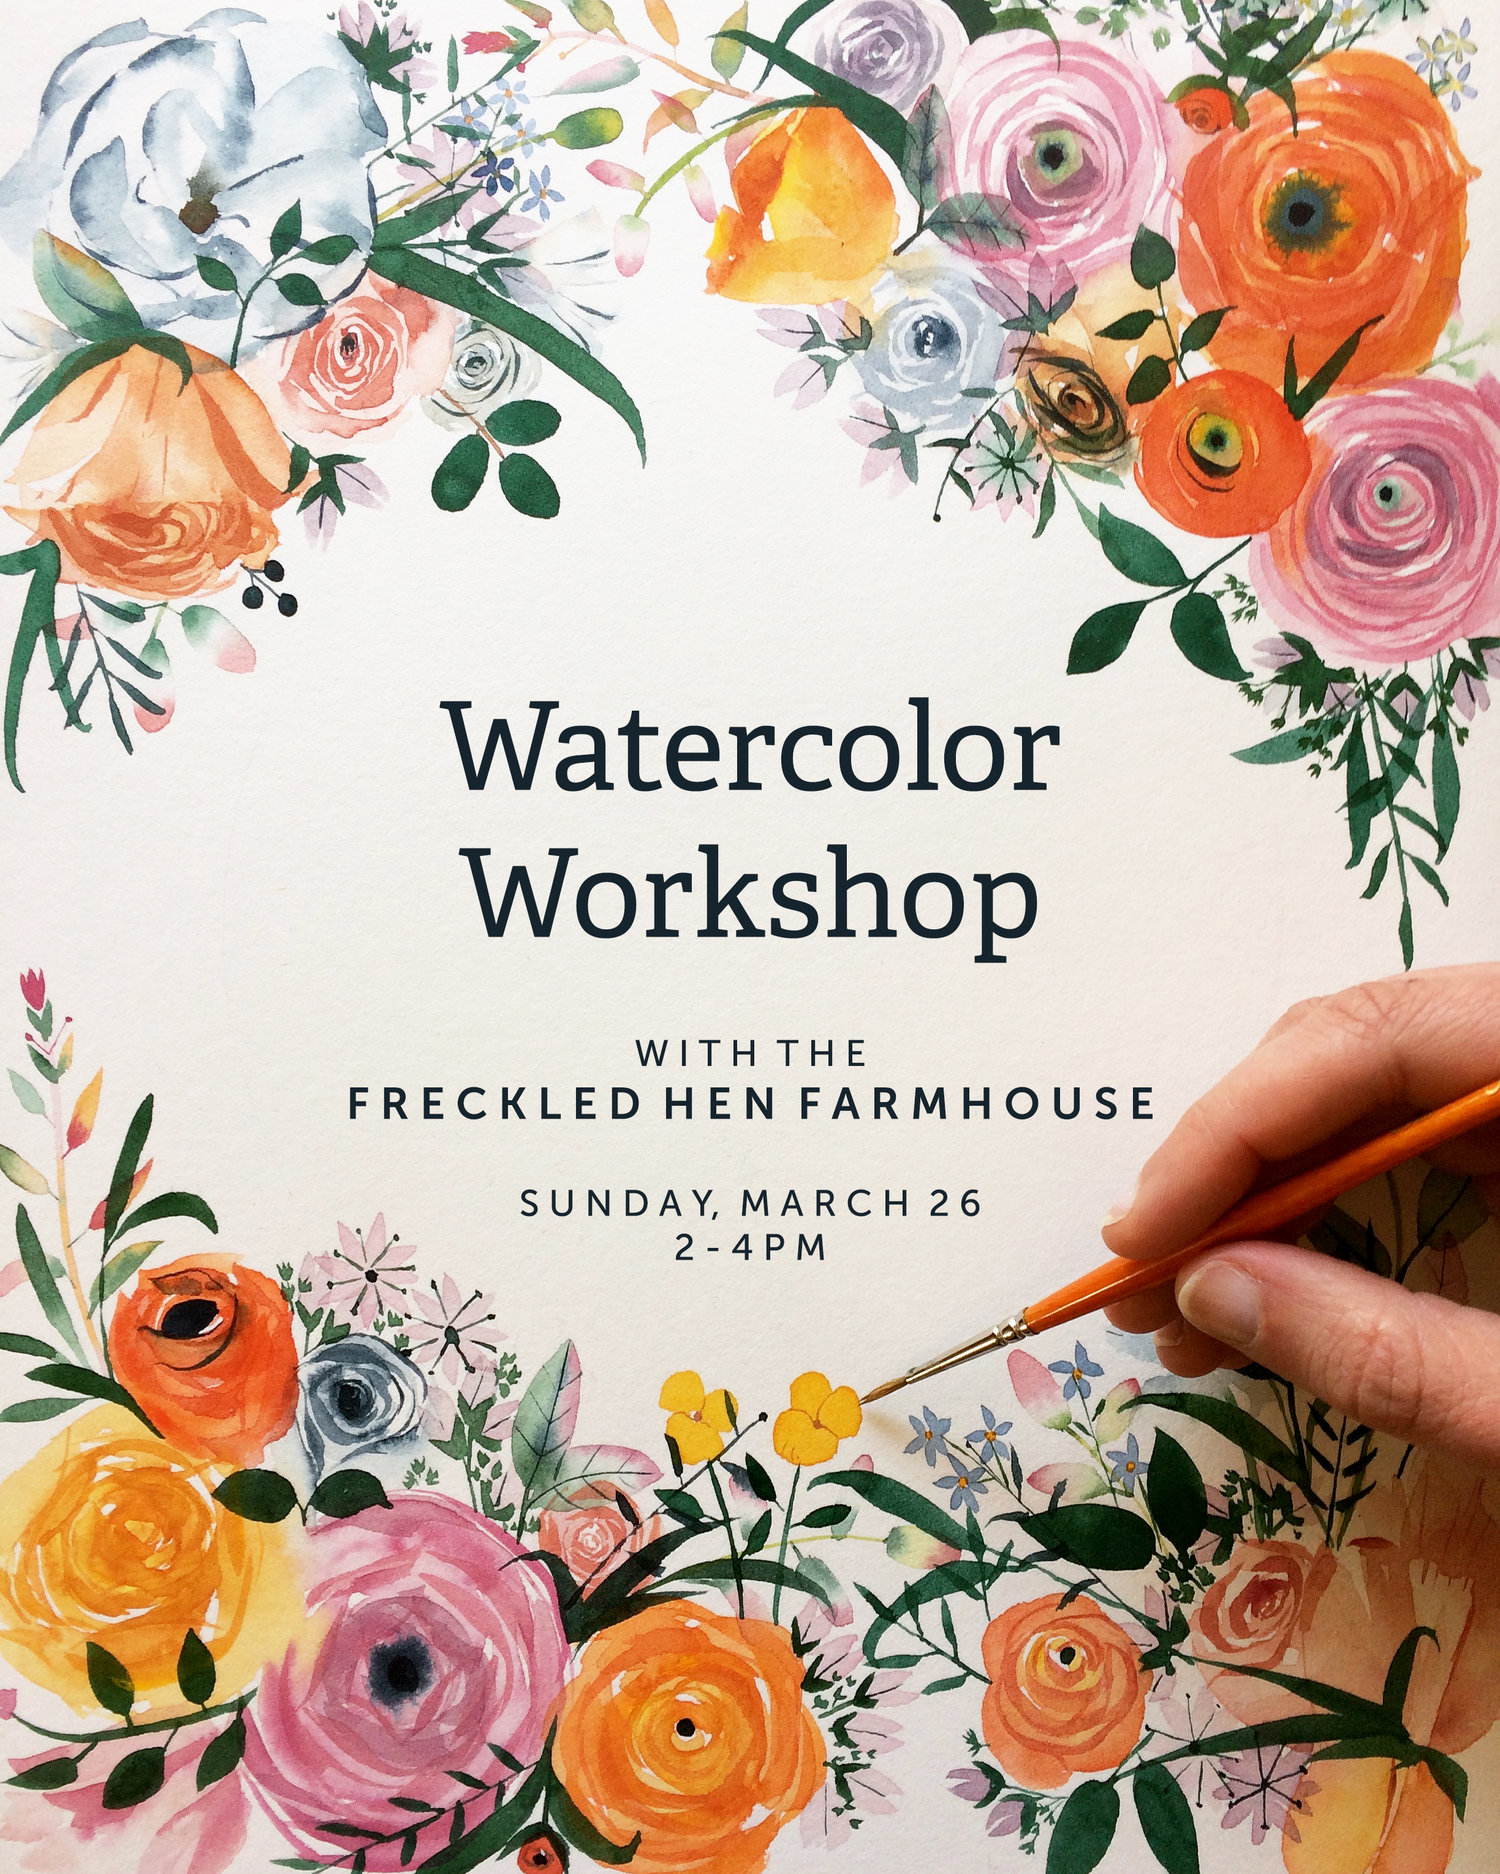 May We Fly Watercolor Workshop At The Freckled Hen Farmhouse